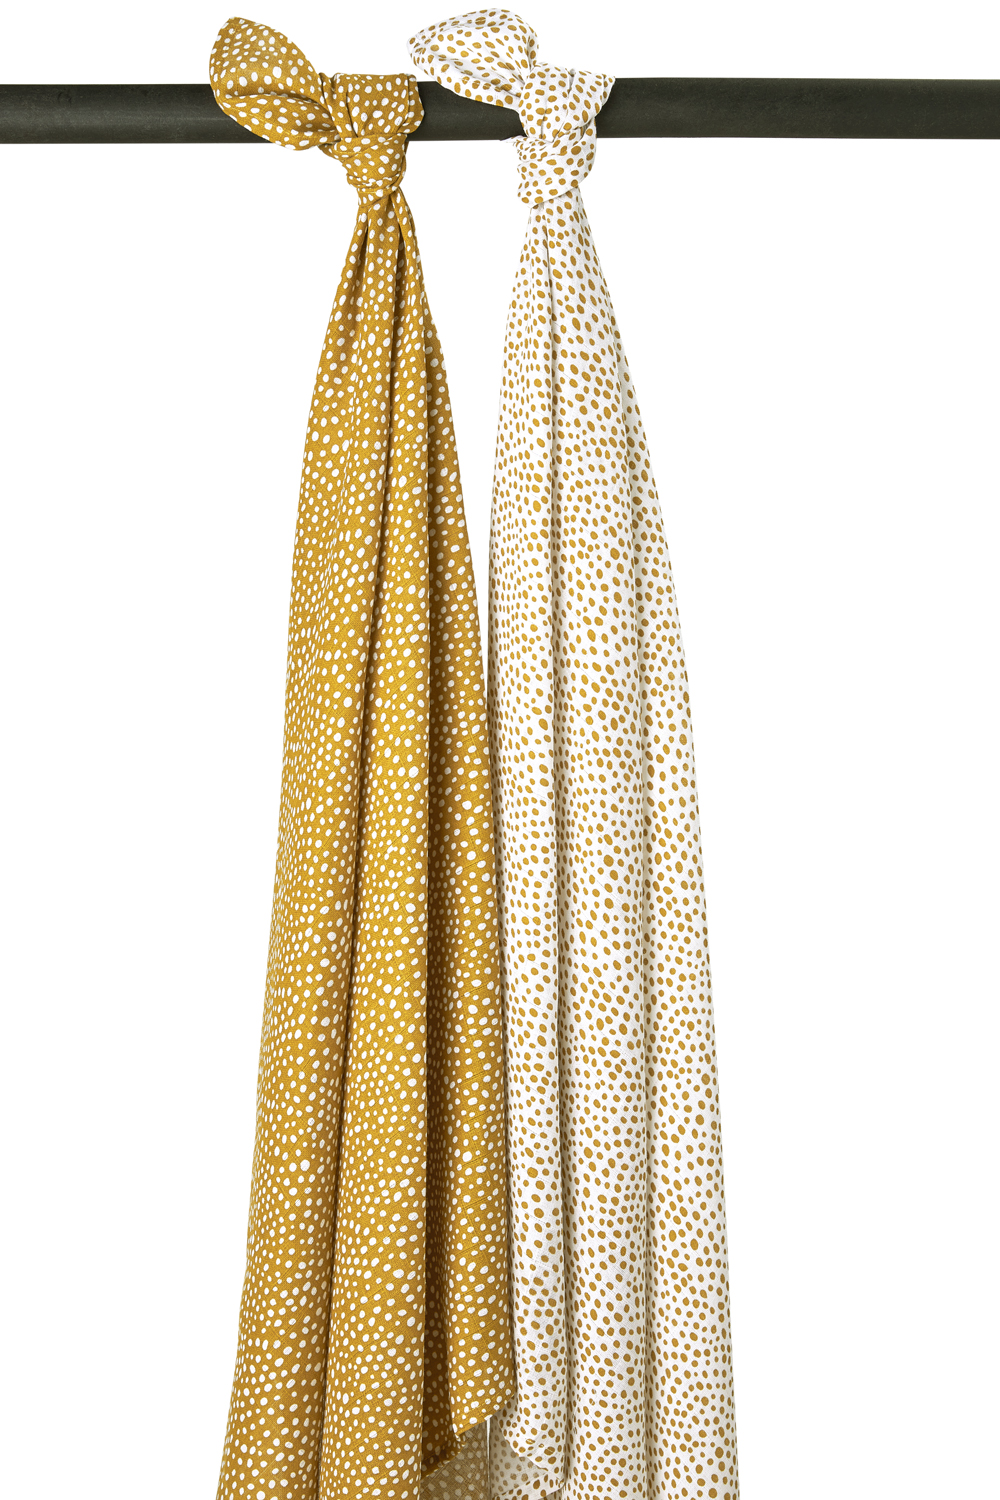 Hydrofiele Swaddles 2-Pack Cheetah - Honey Gold - 120x120cm